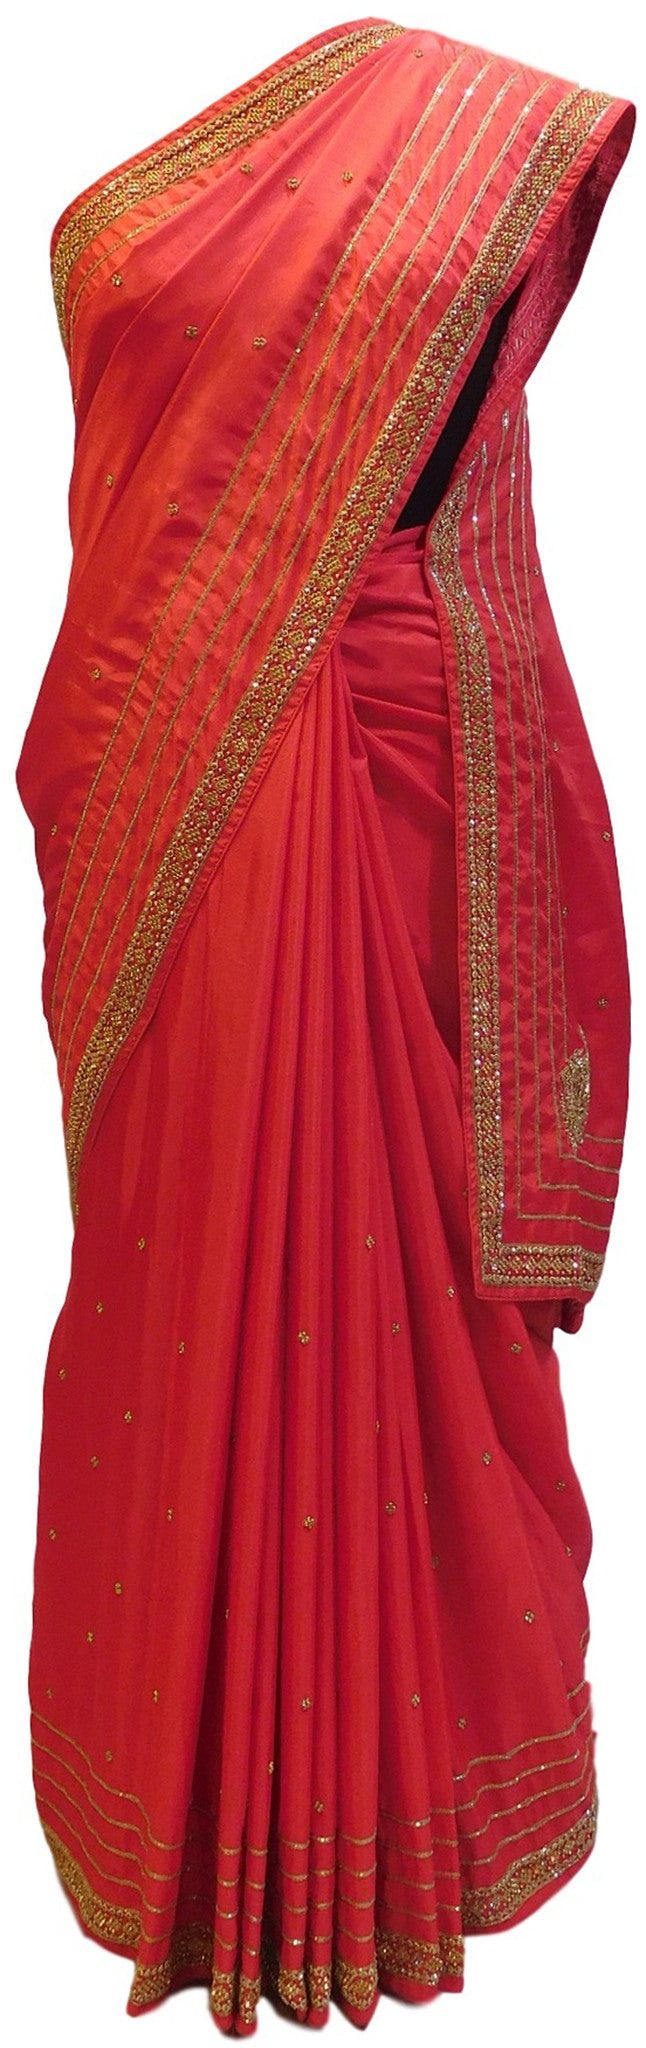 Red Designer Georgette Saree With Cutdana, Stone Work Border